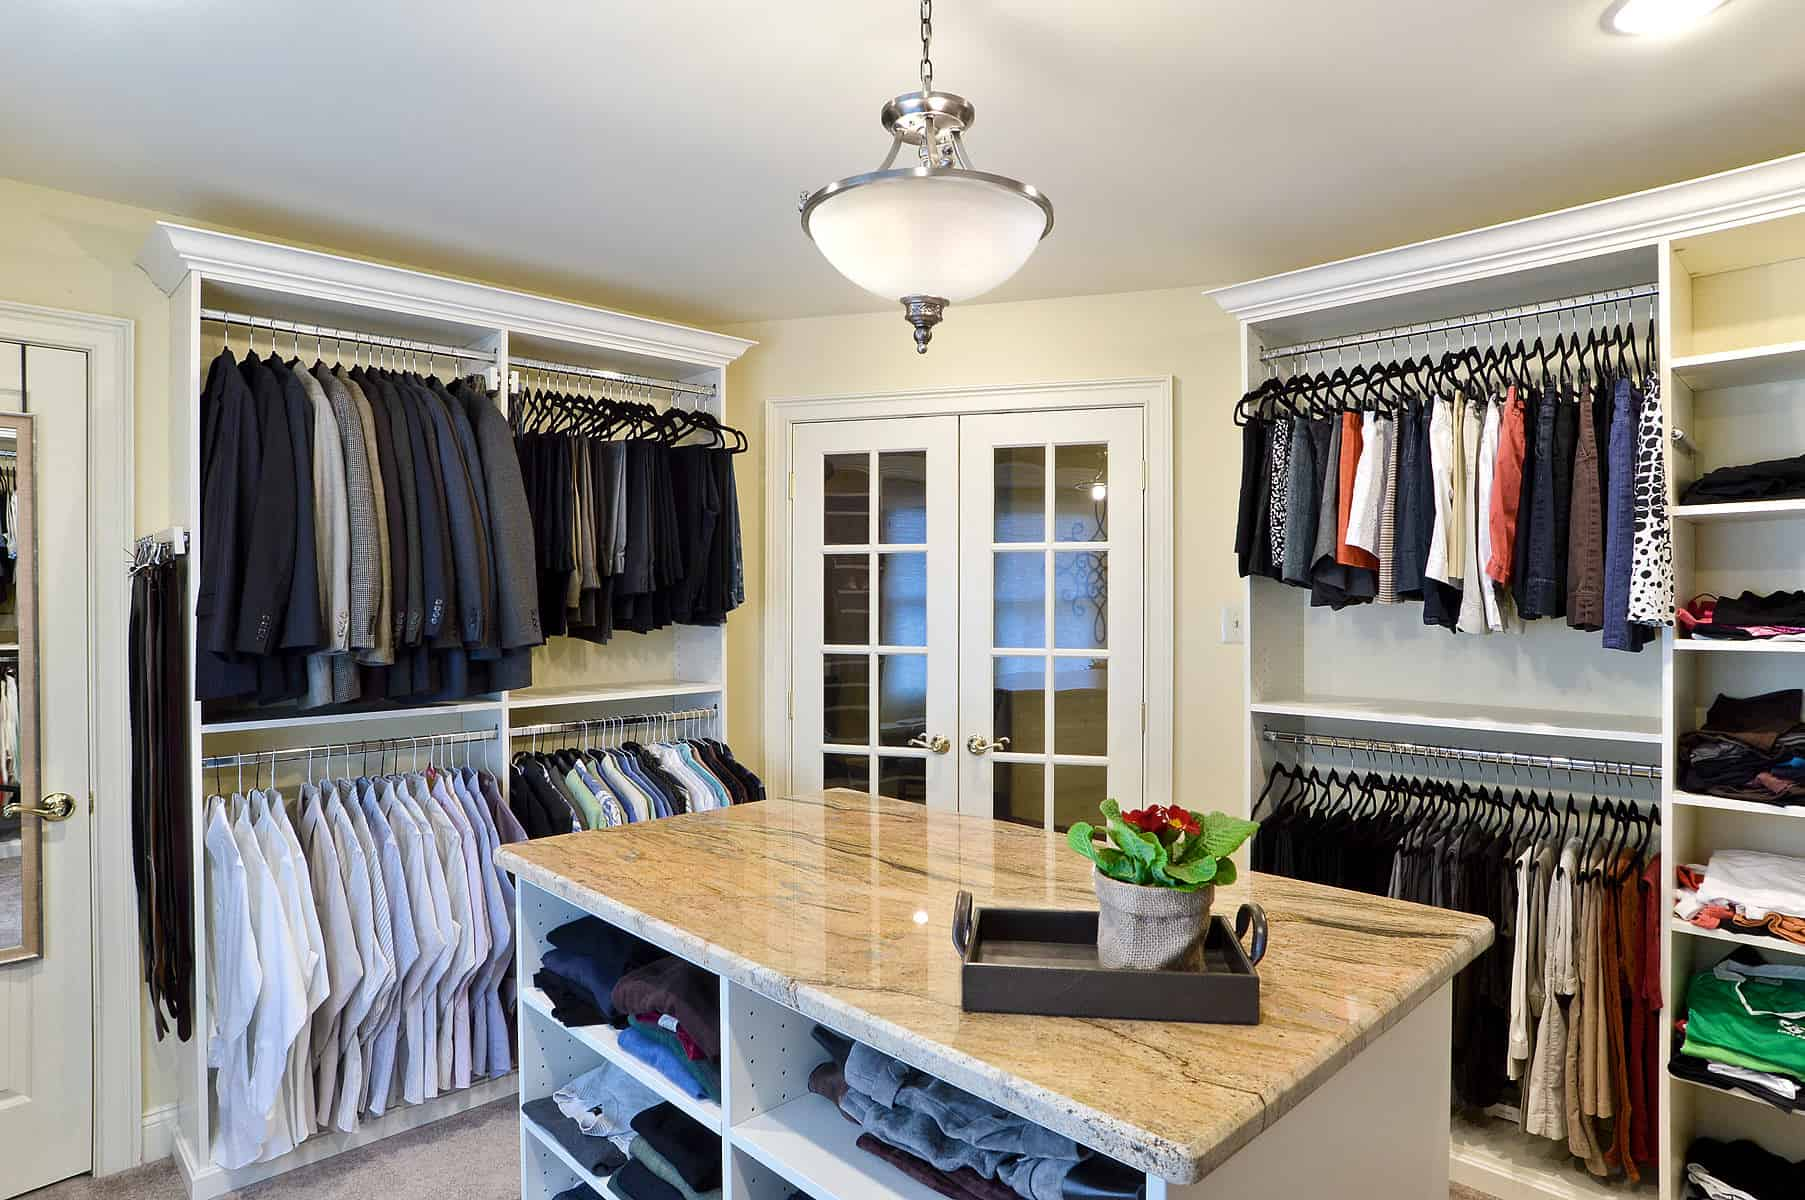 Large walk-in closet with open storage. French doors, and an island with open shelving for additional storage.